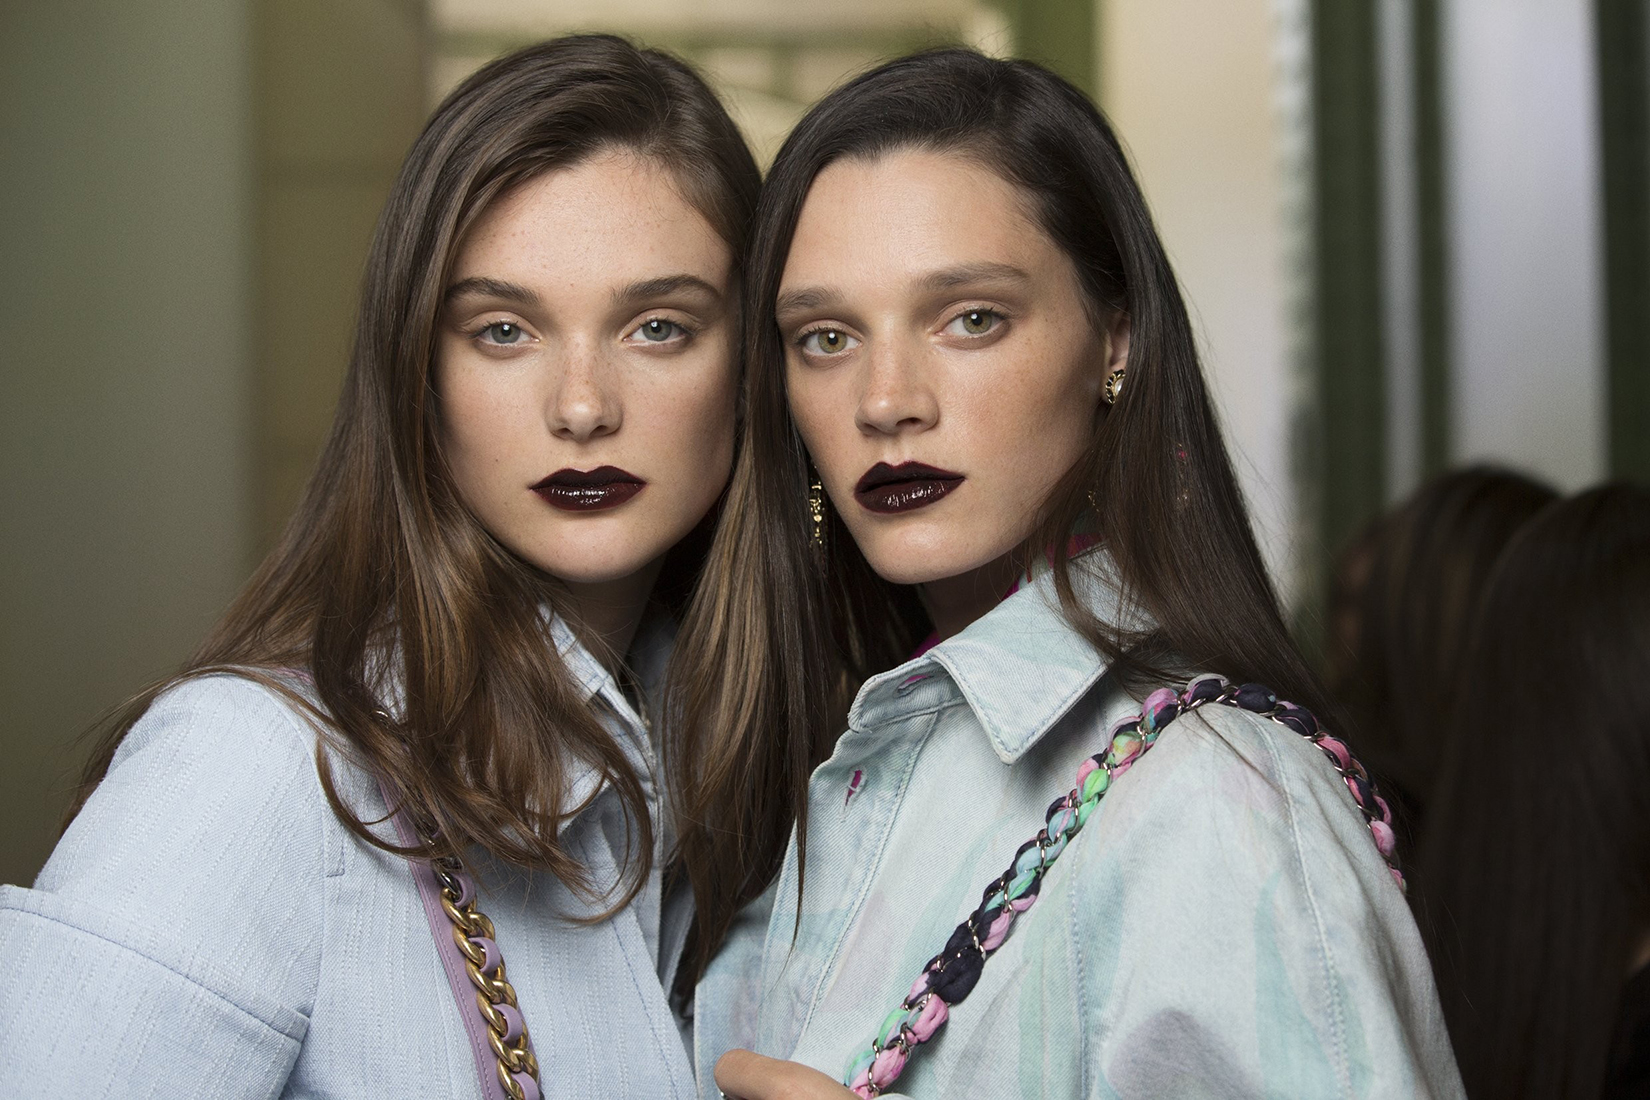 Chanel Cruise 2020 Backstage Beauty